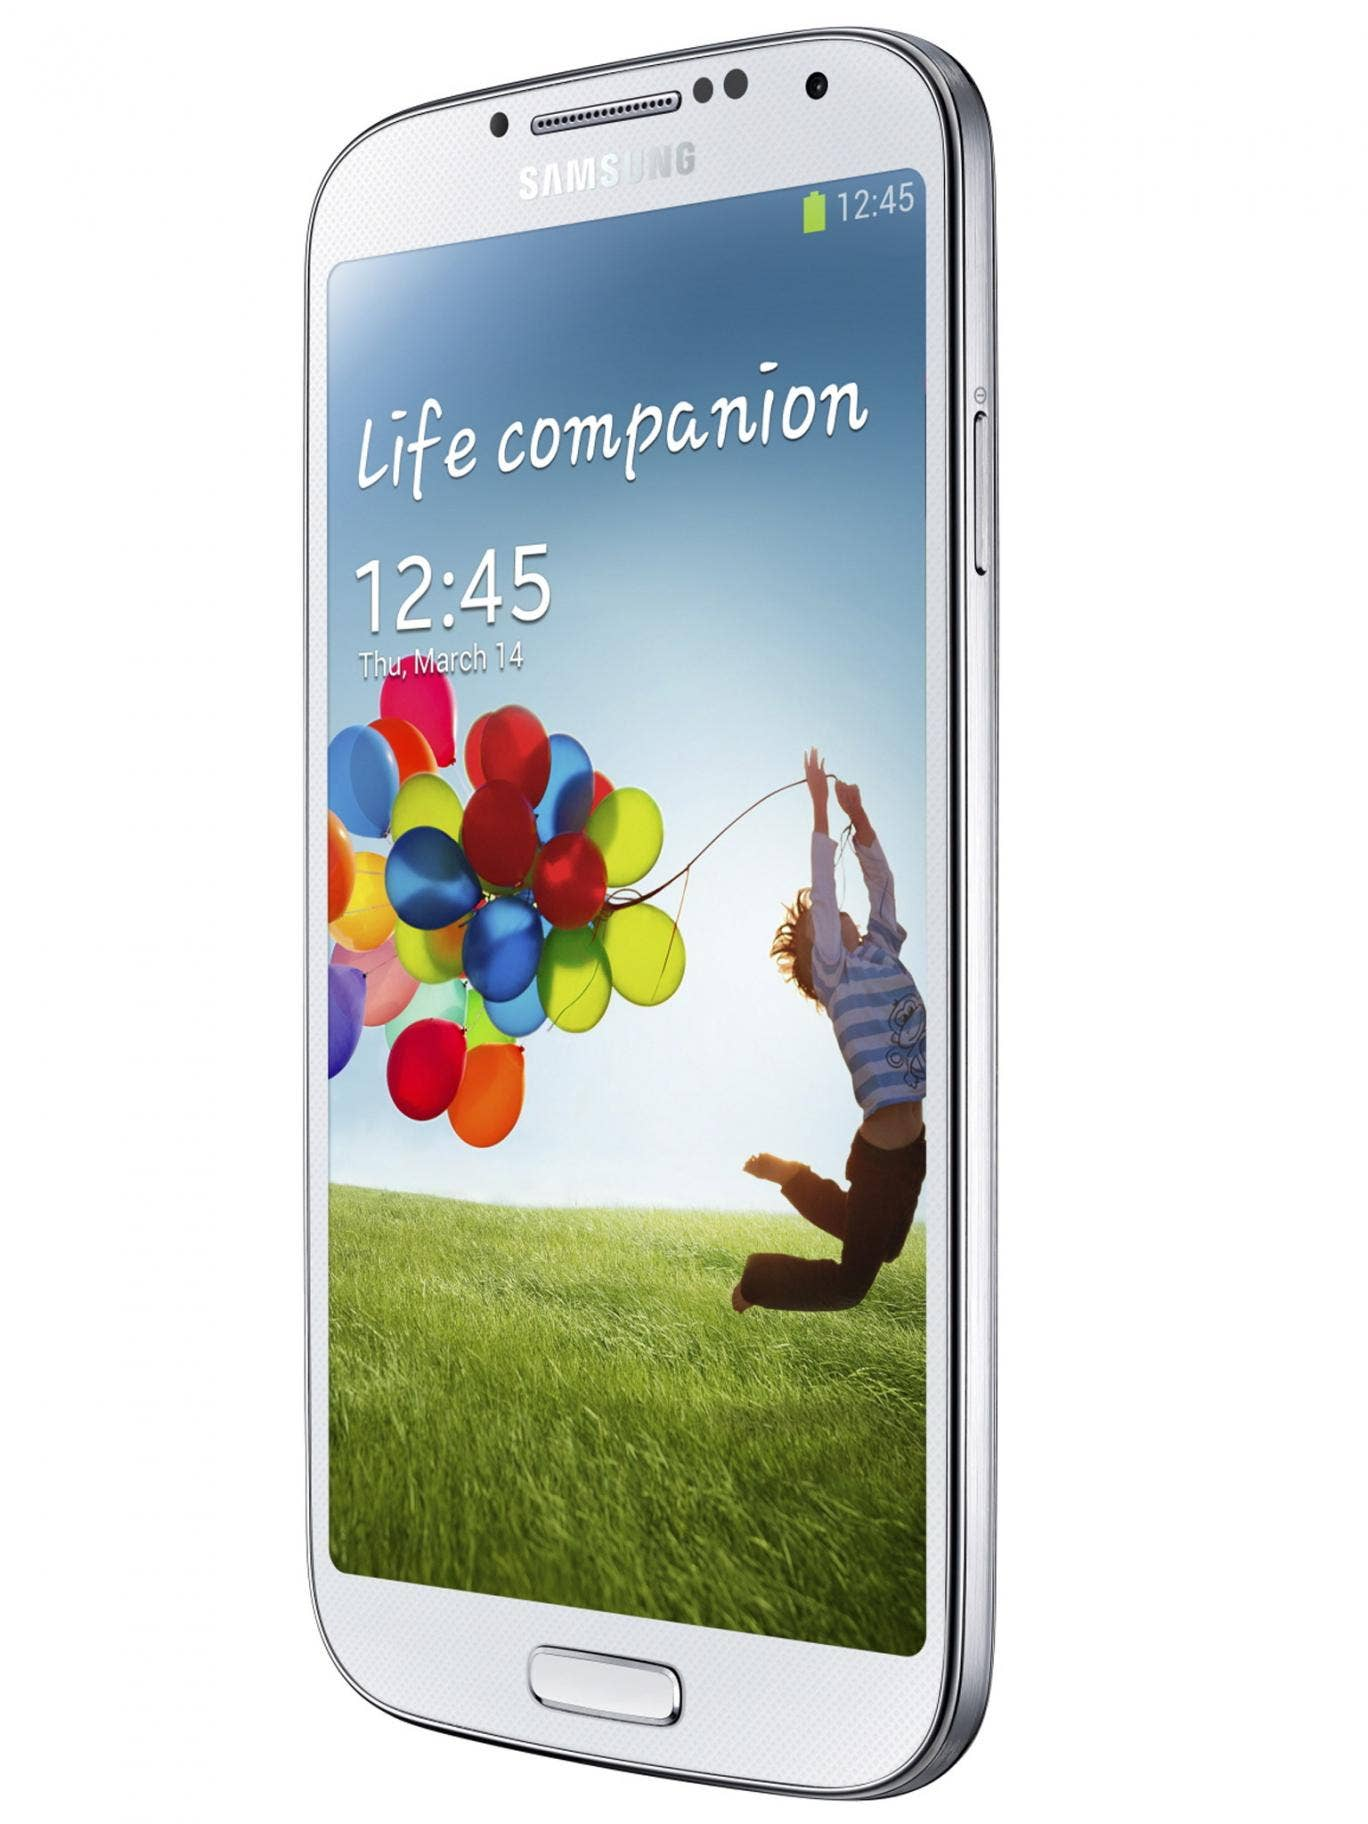 As good as it gets: The Samsung Galaxy S4